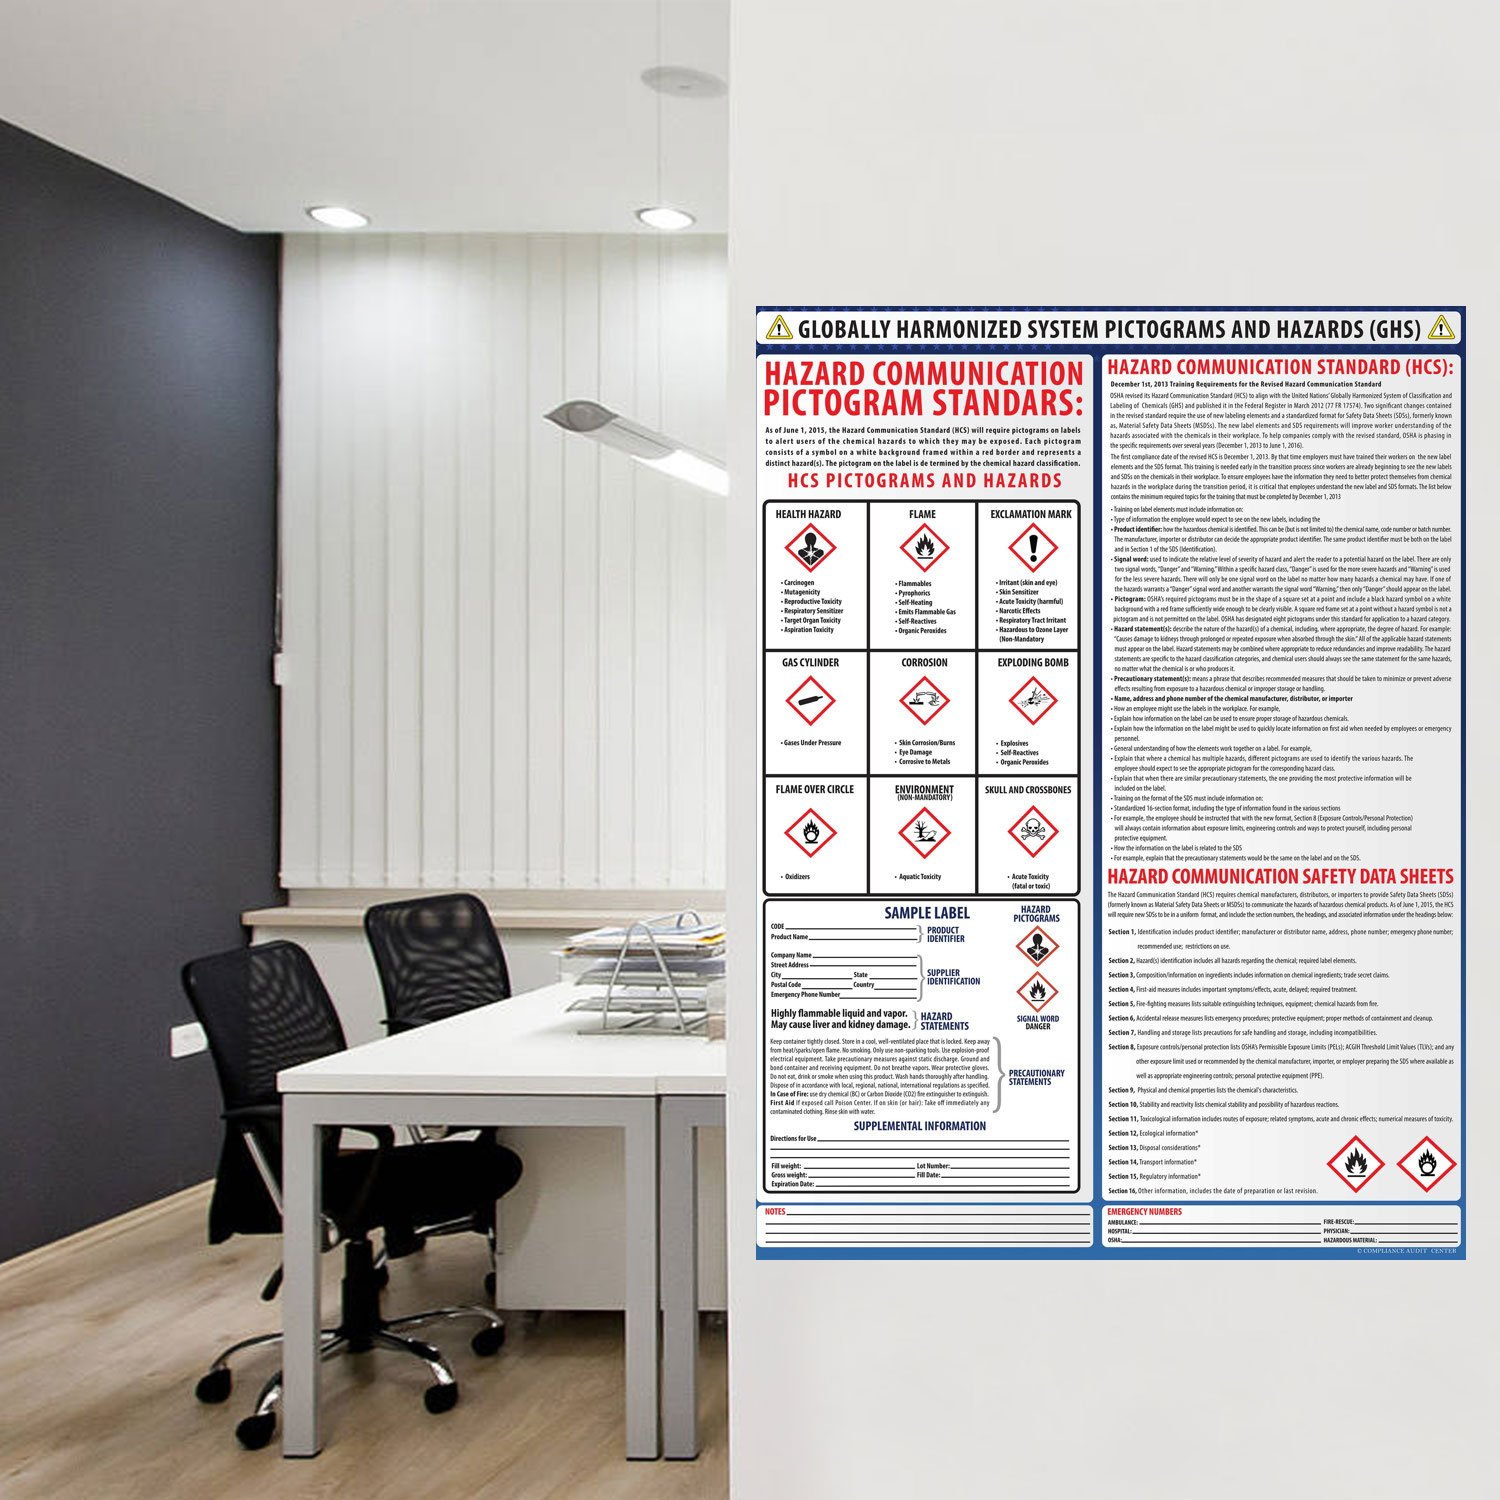 Globally Harmonized System Pictograms and Hazards (GHS) Poster - Laminated 24'' x 24'' by Labor Law Posters (Image #2)